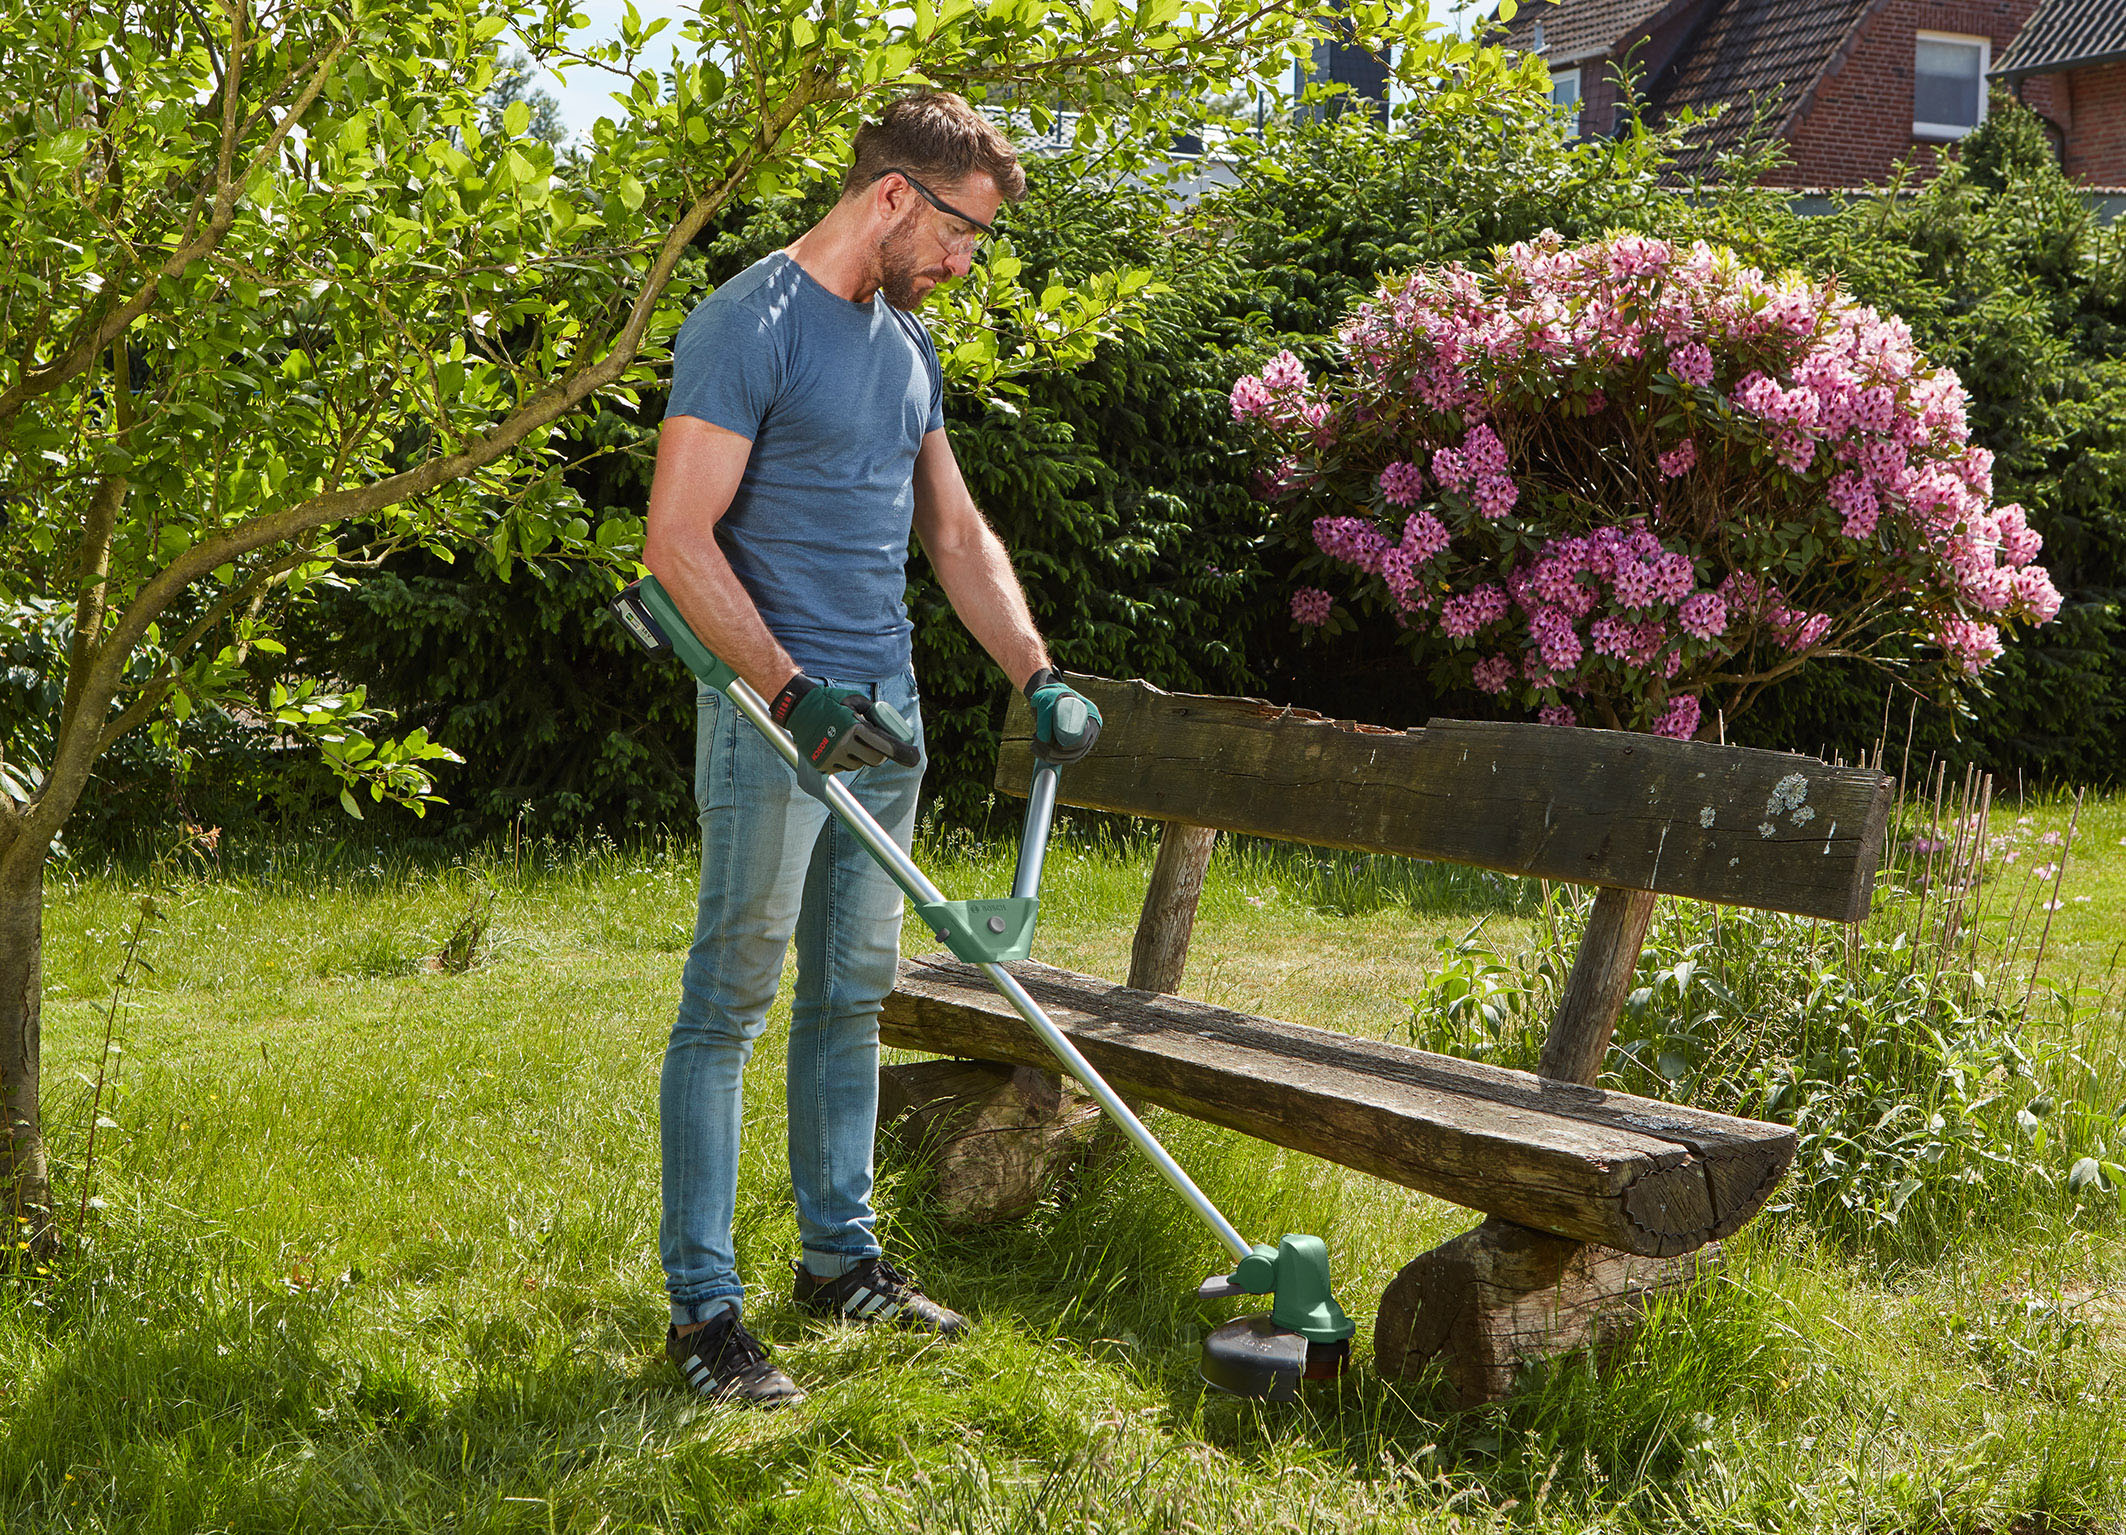 Ergonomic and fast: UniversalGrassCut 18 for medium-sized gardens